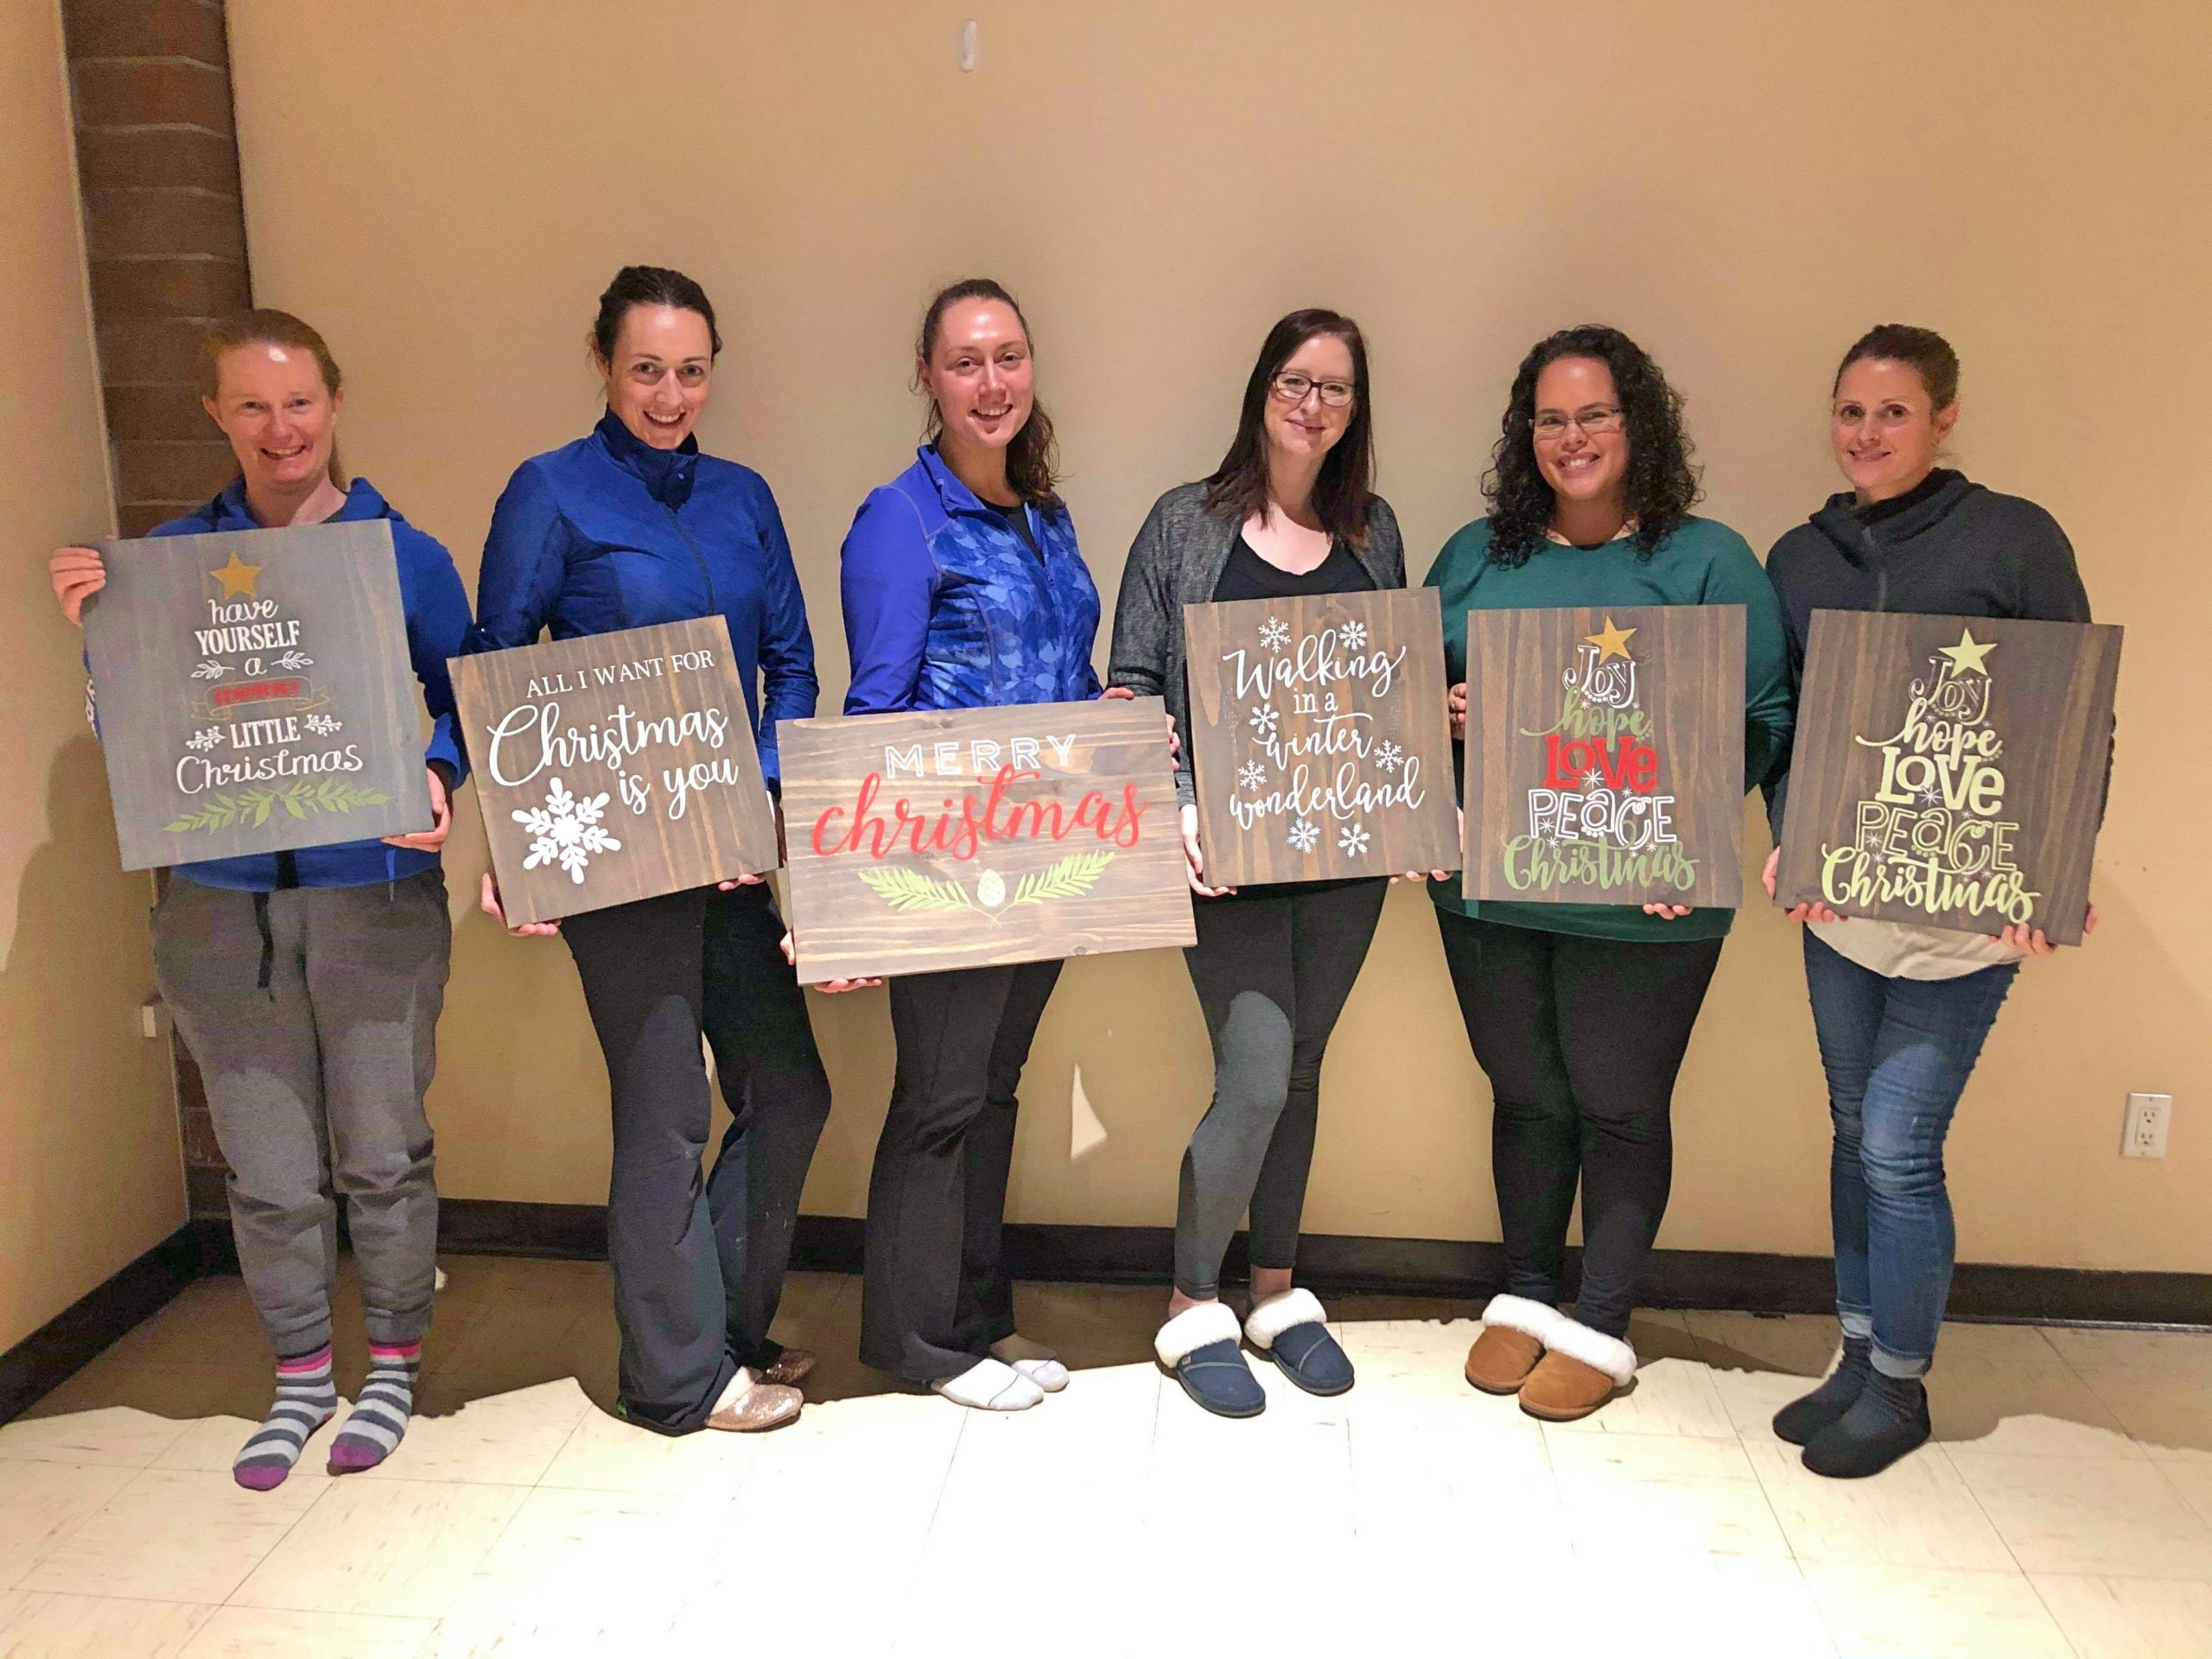 Christmas Sign Painting Group with Finished Signs